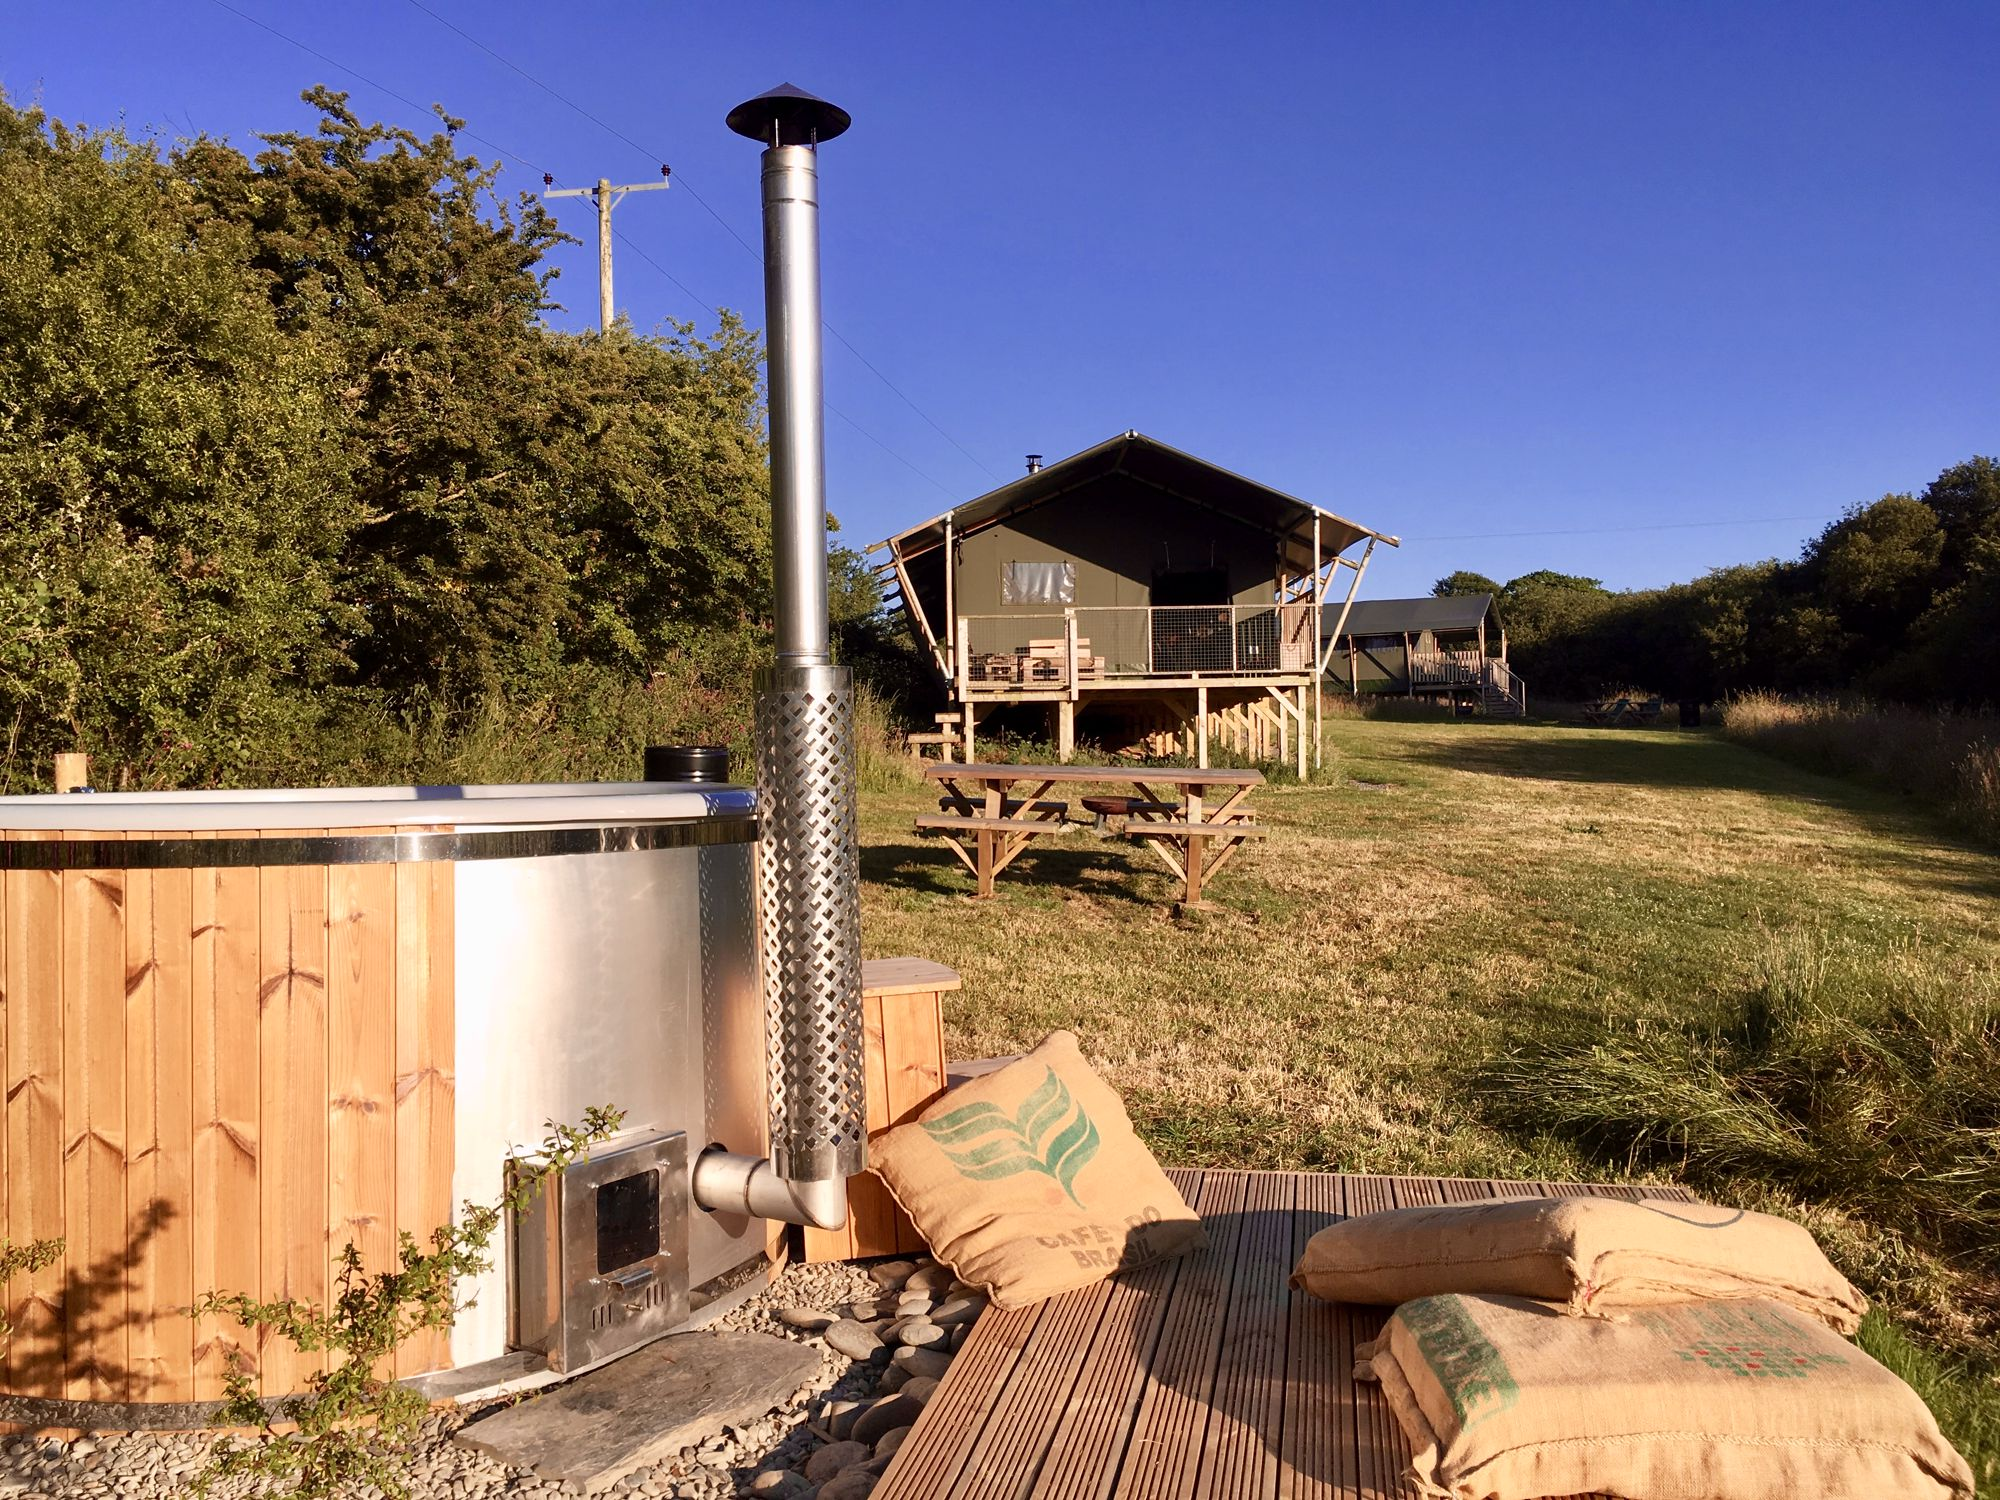 Glamping in Ceredigion holidays at Cool Places